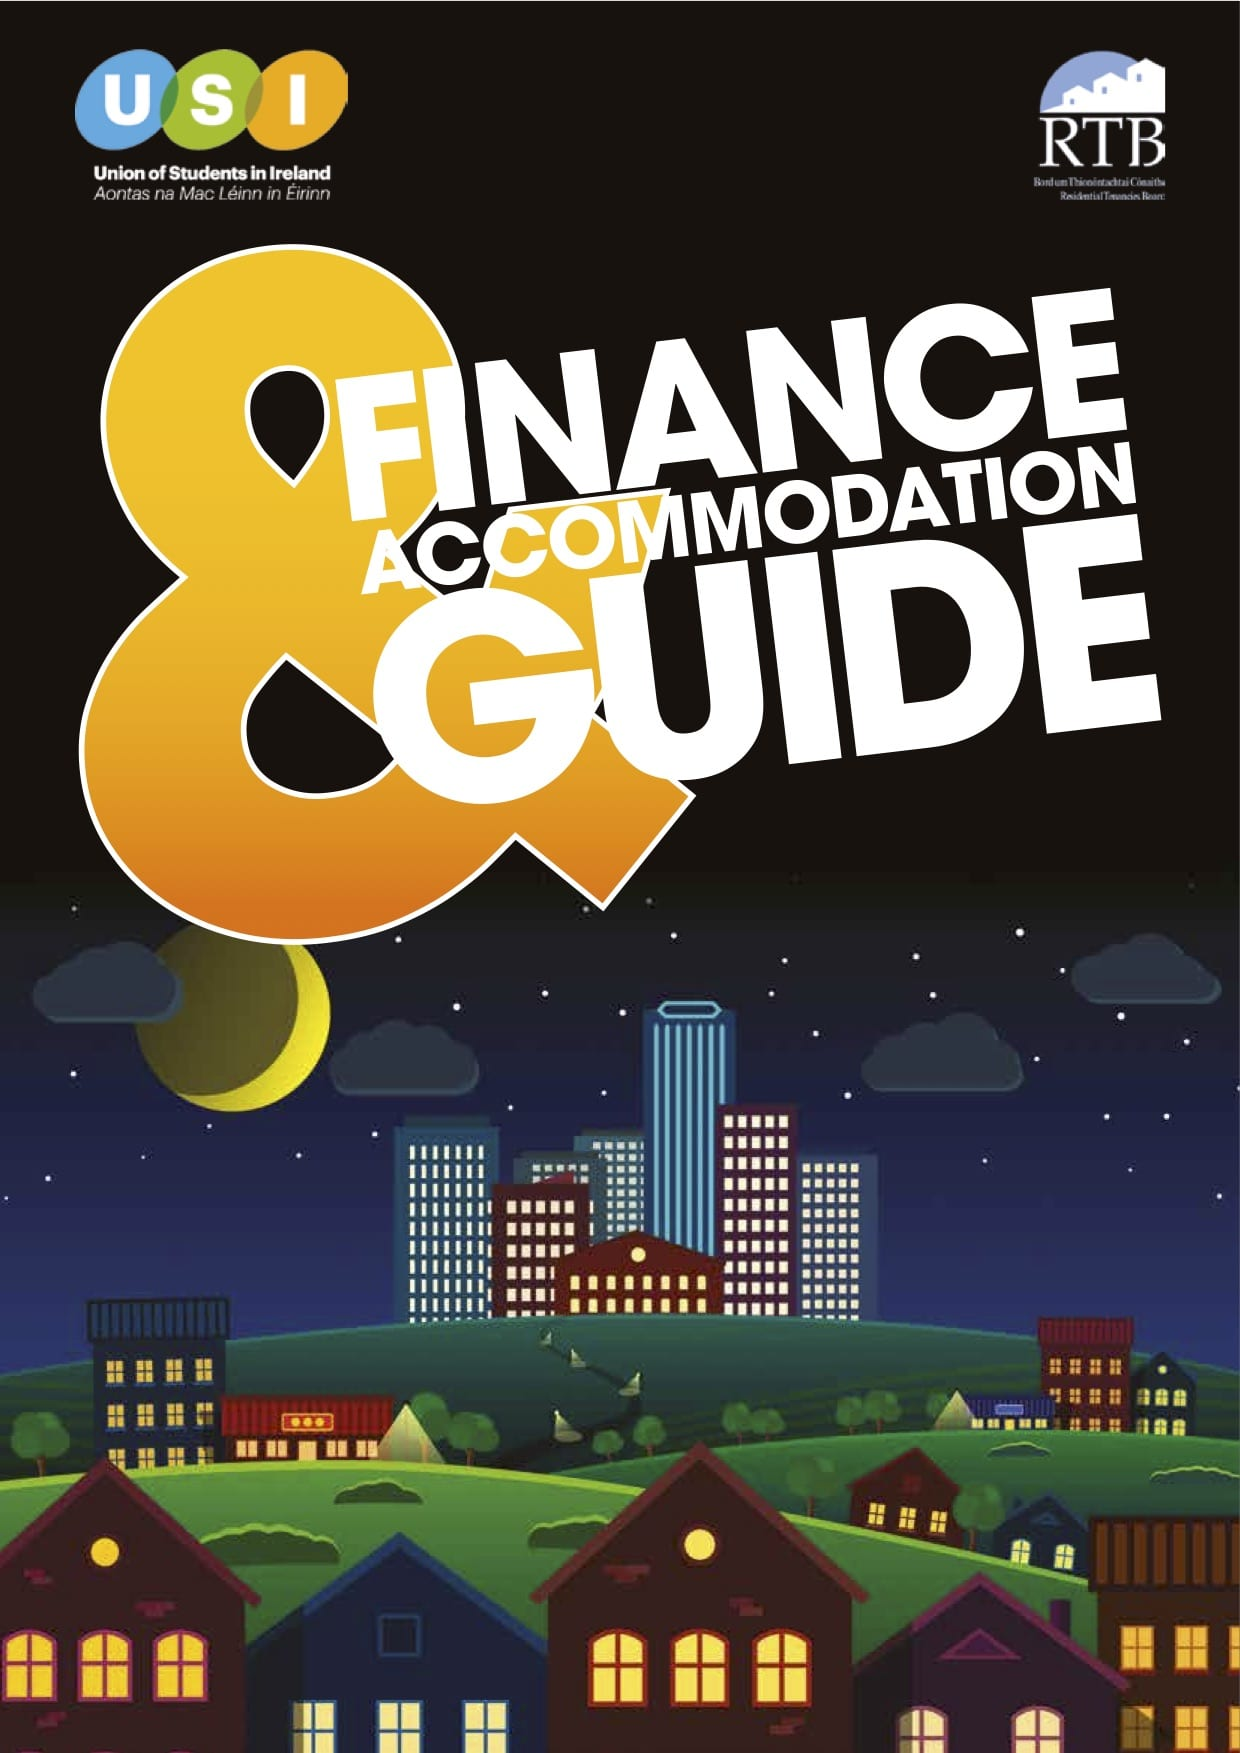 USI Finance & Accommodation Guide 2016